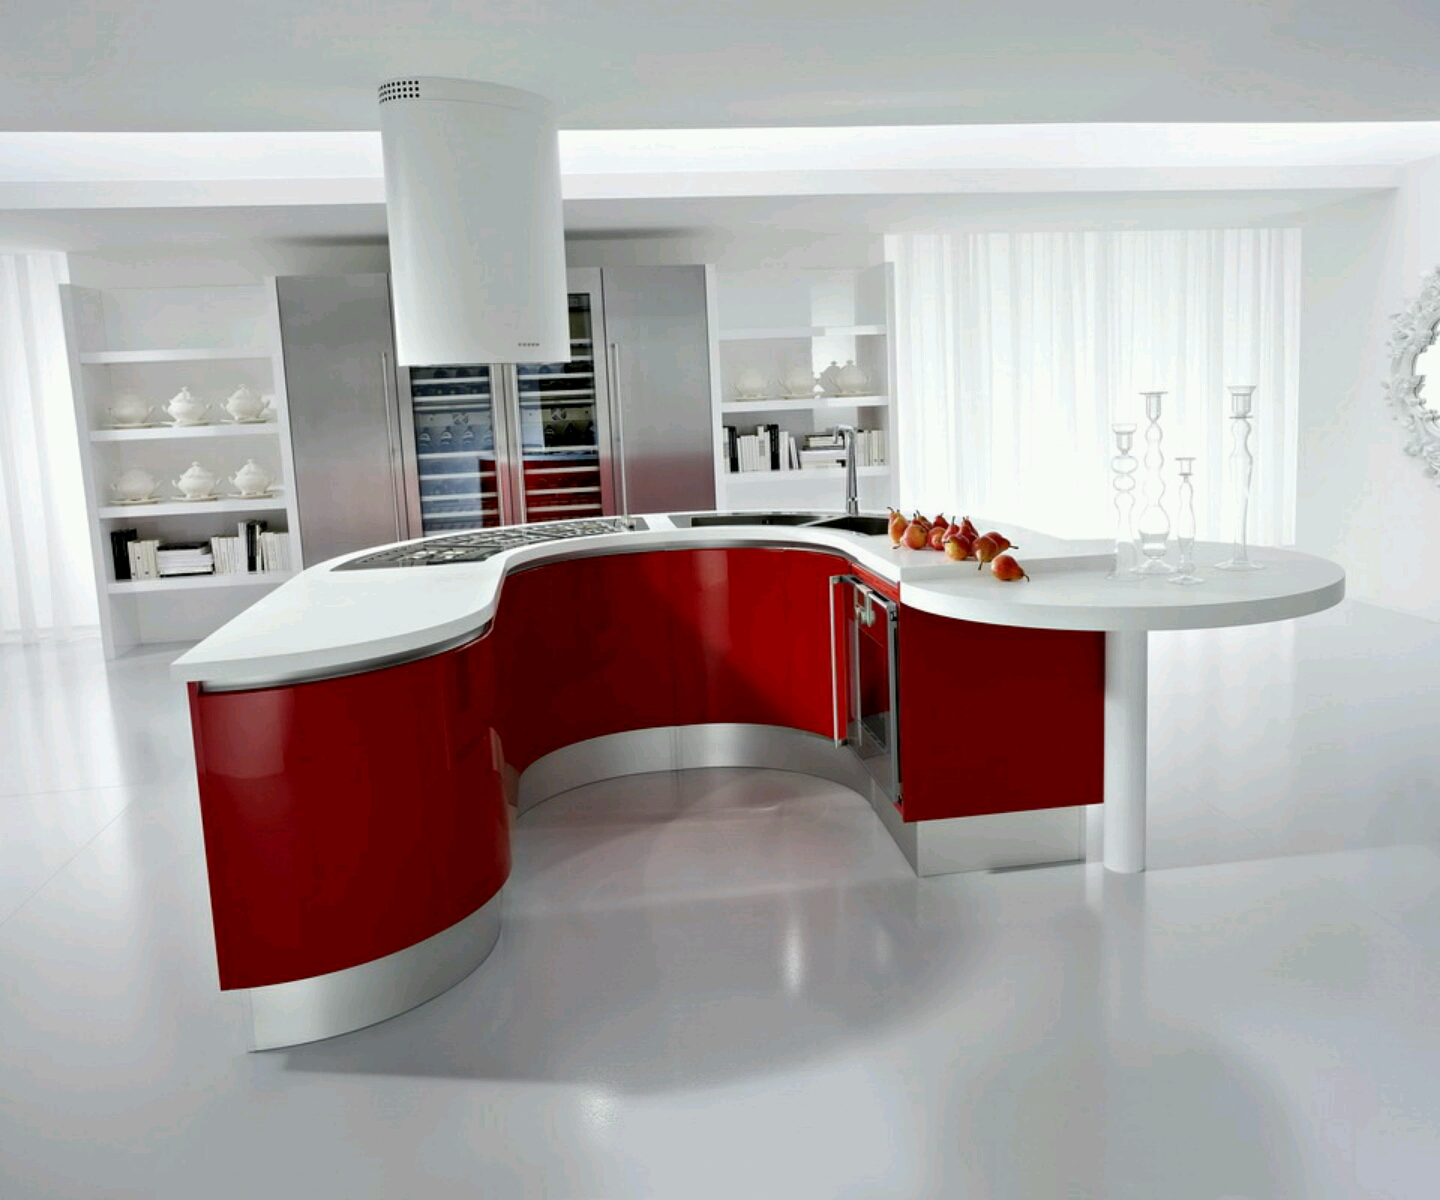 Modern kitchen cabinets designs ideas furniture gallery for Modern kitchen